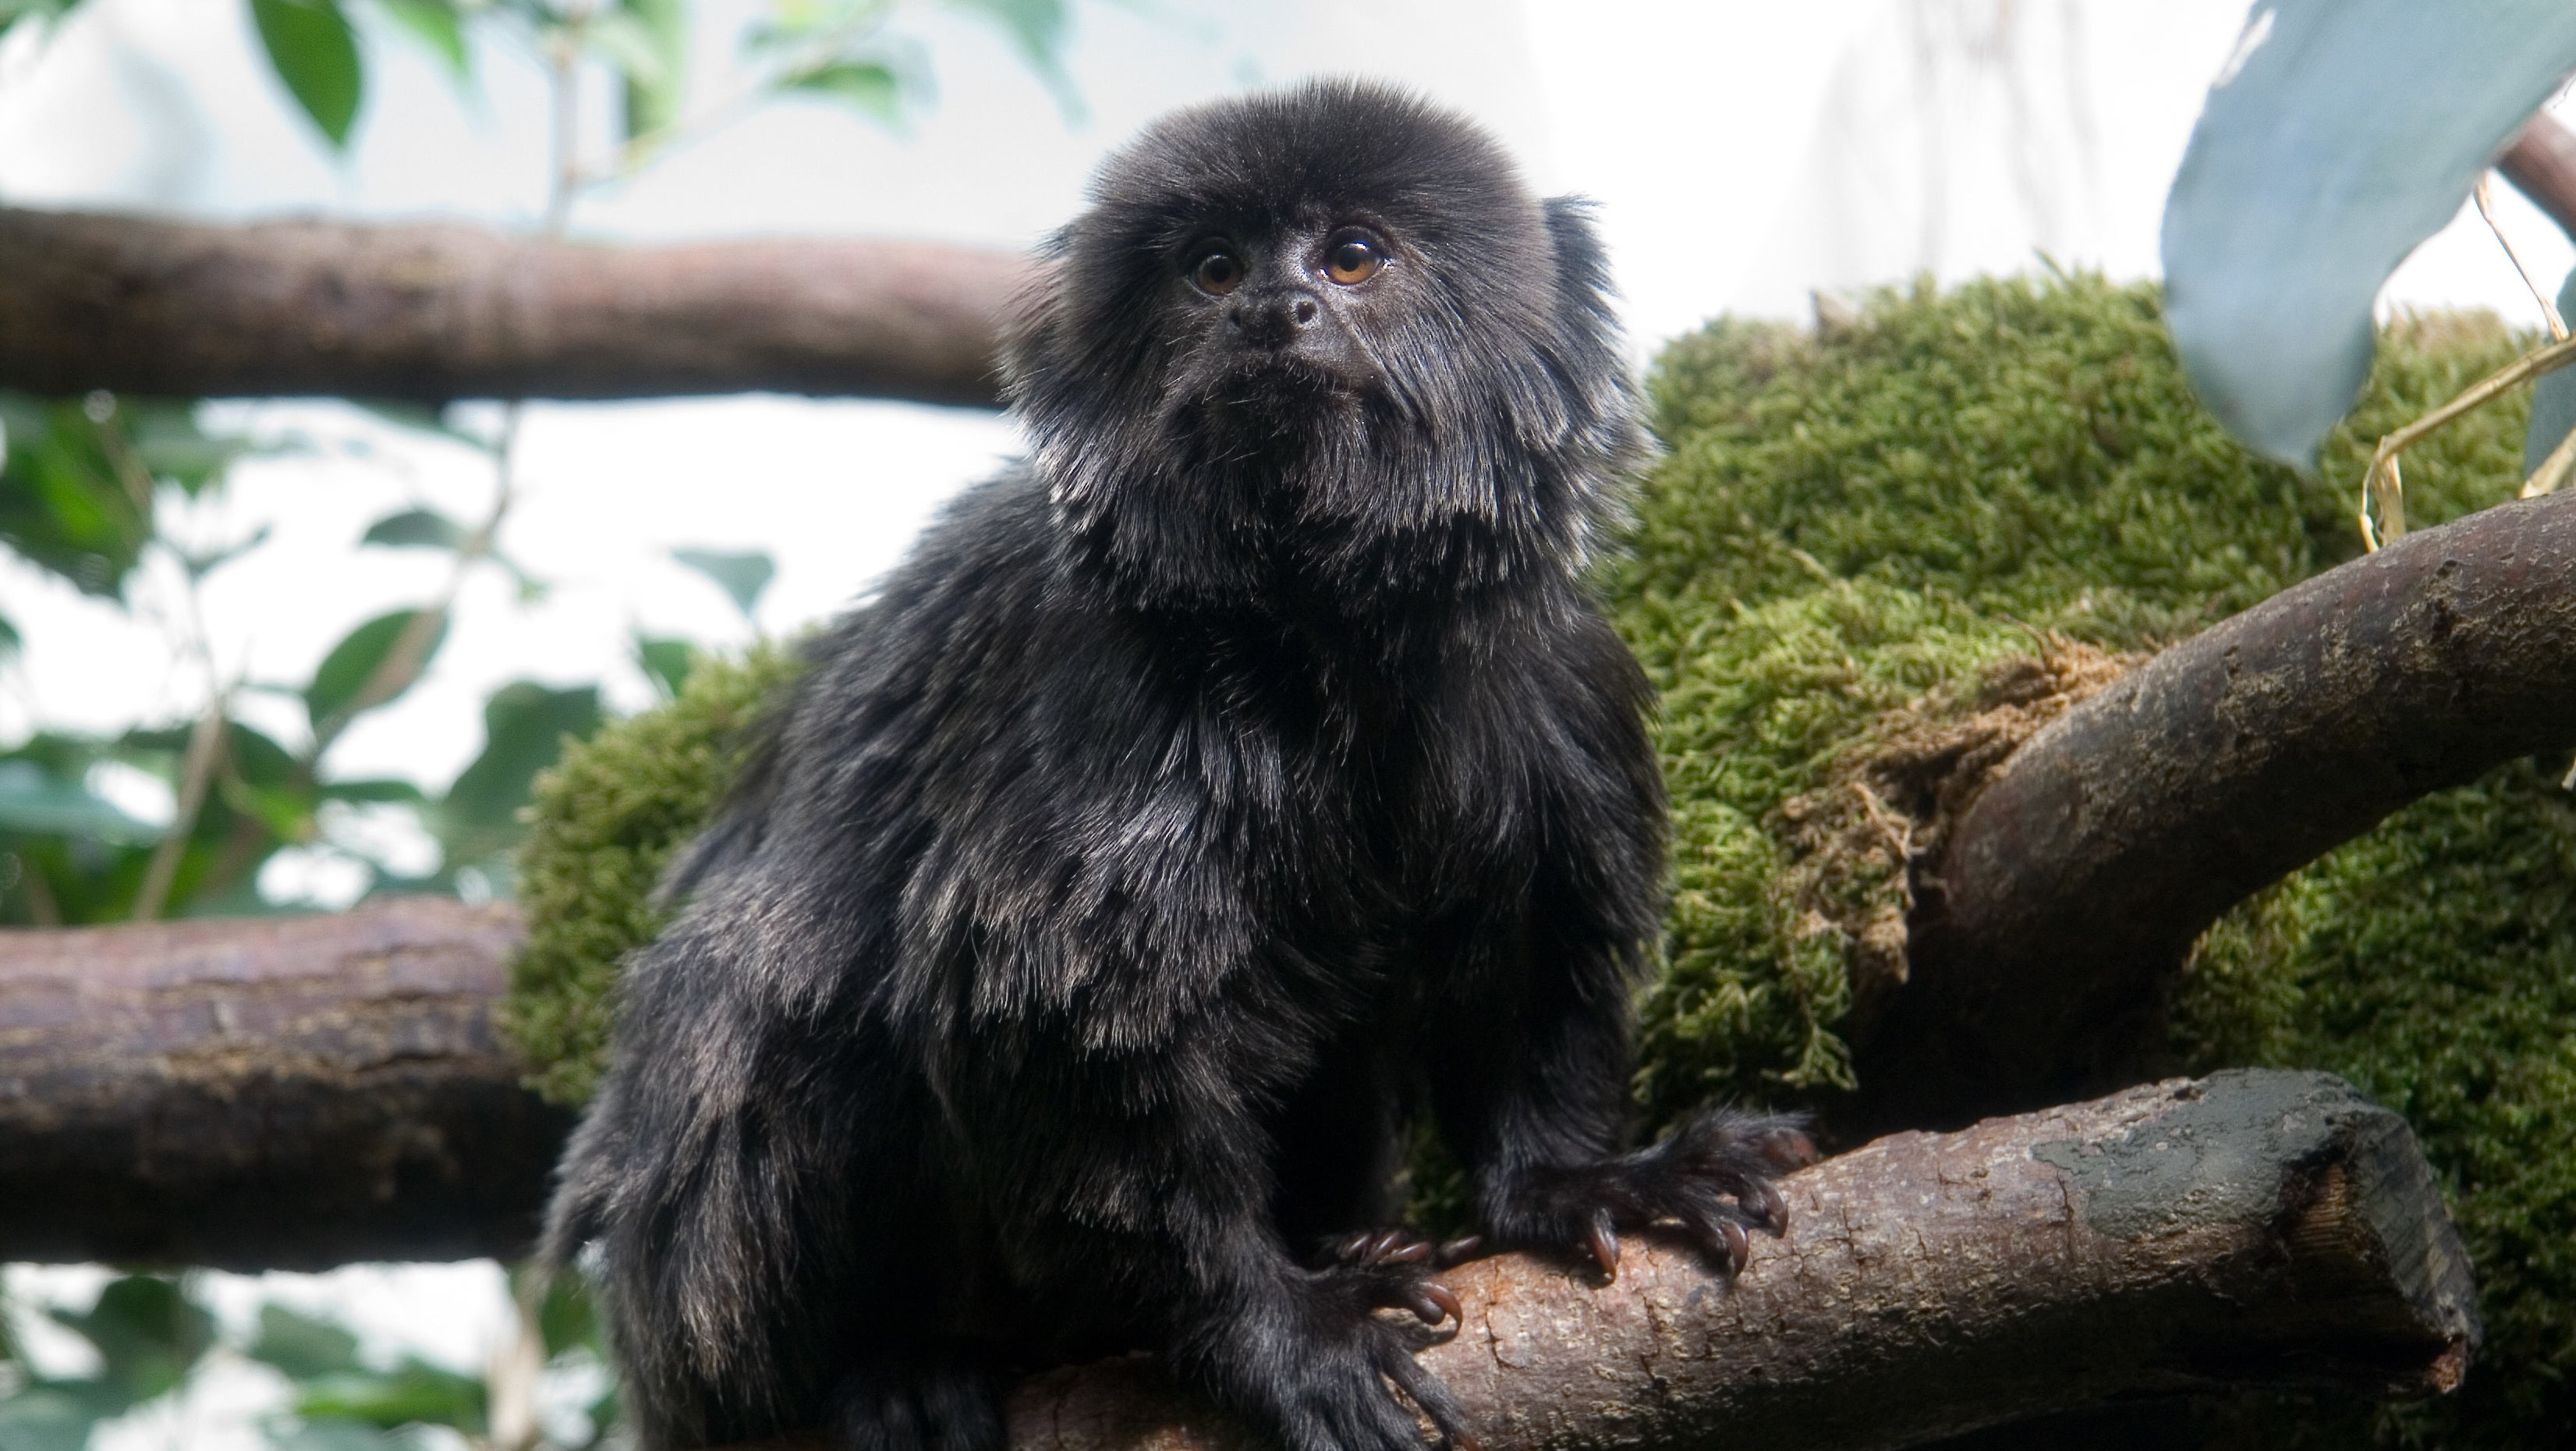 This Tiny, Beautiful Monkey Has Been Stolen And Needs Her Medicine